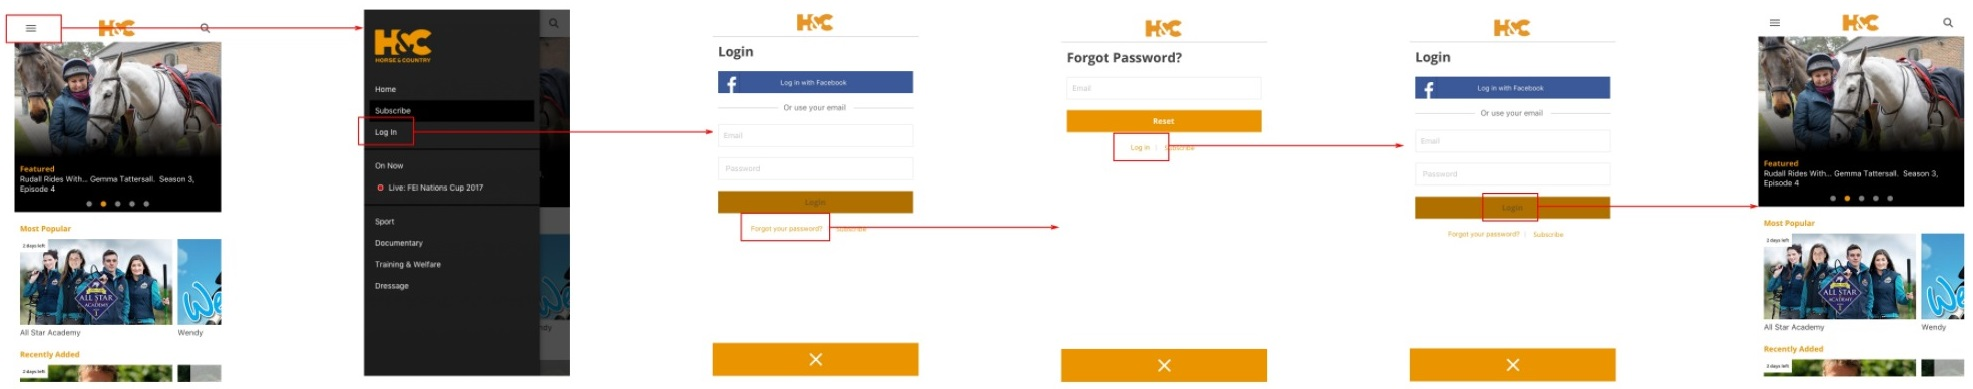 Steps to login on Android Mobile and Tablet